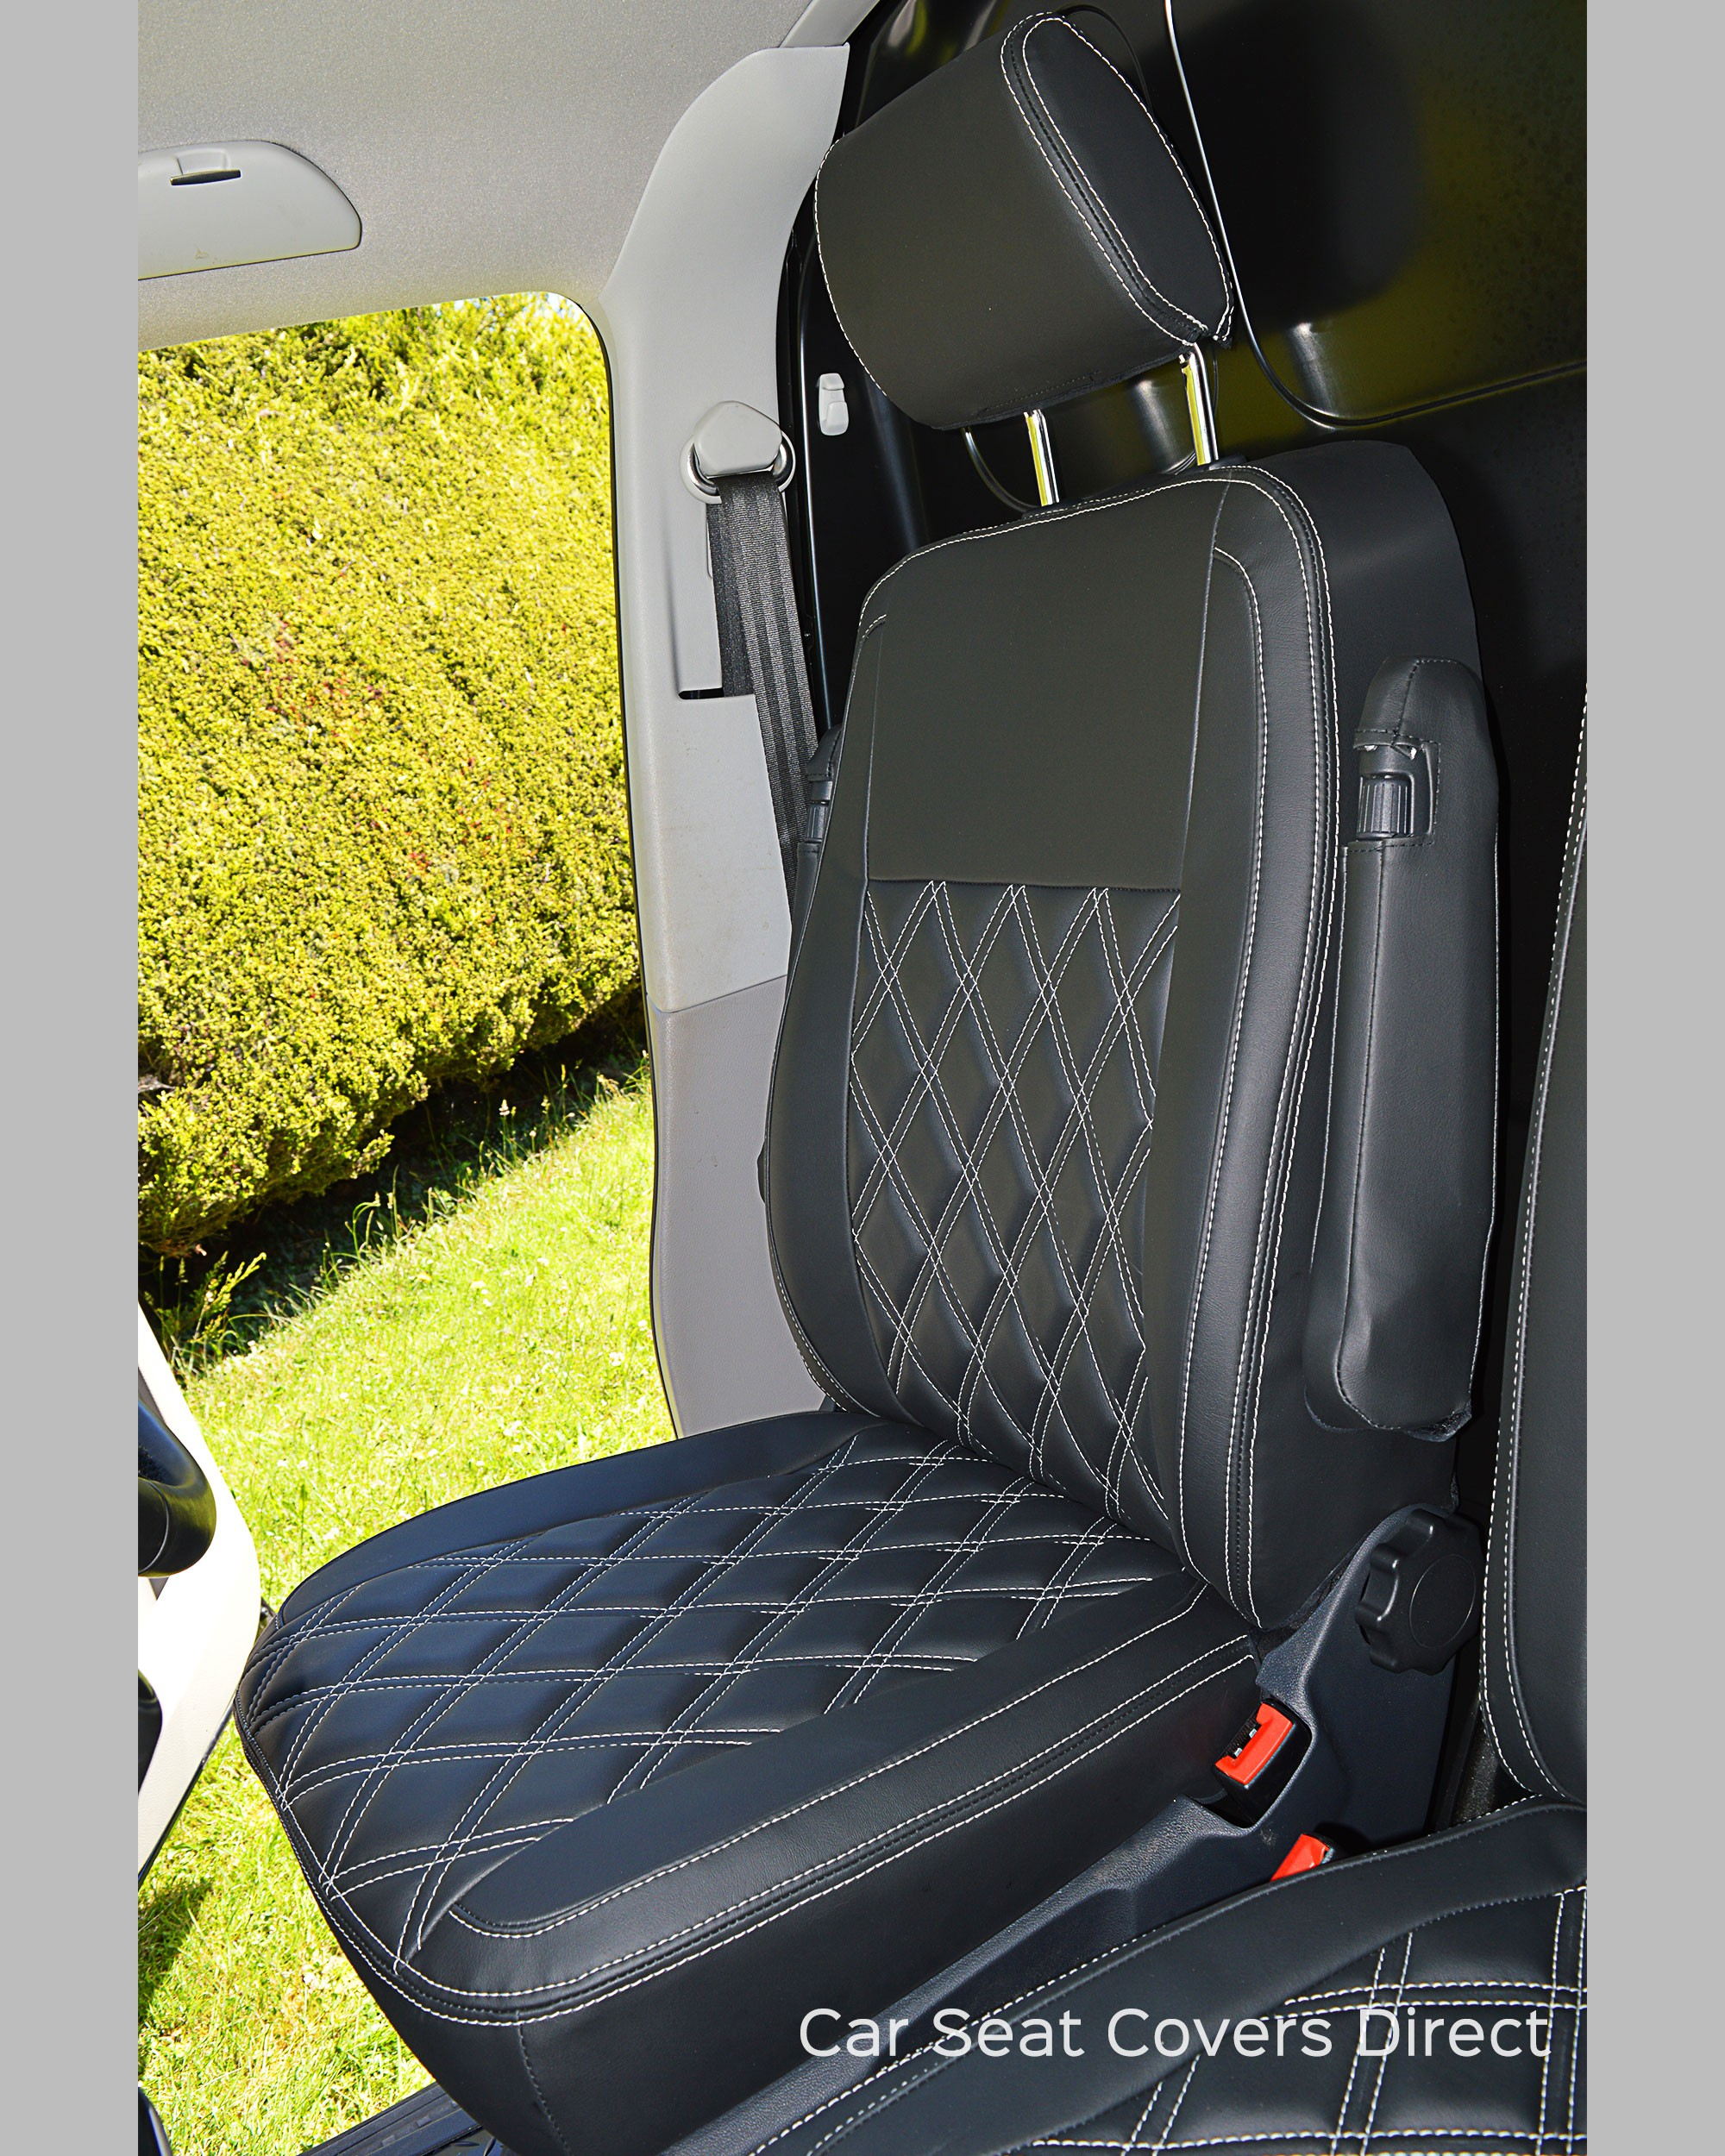 VW Transporter T5 Tailored Seat Covers - Driver seat